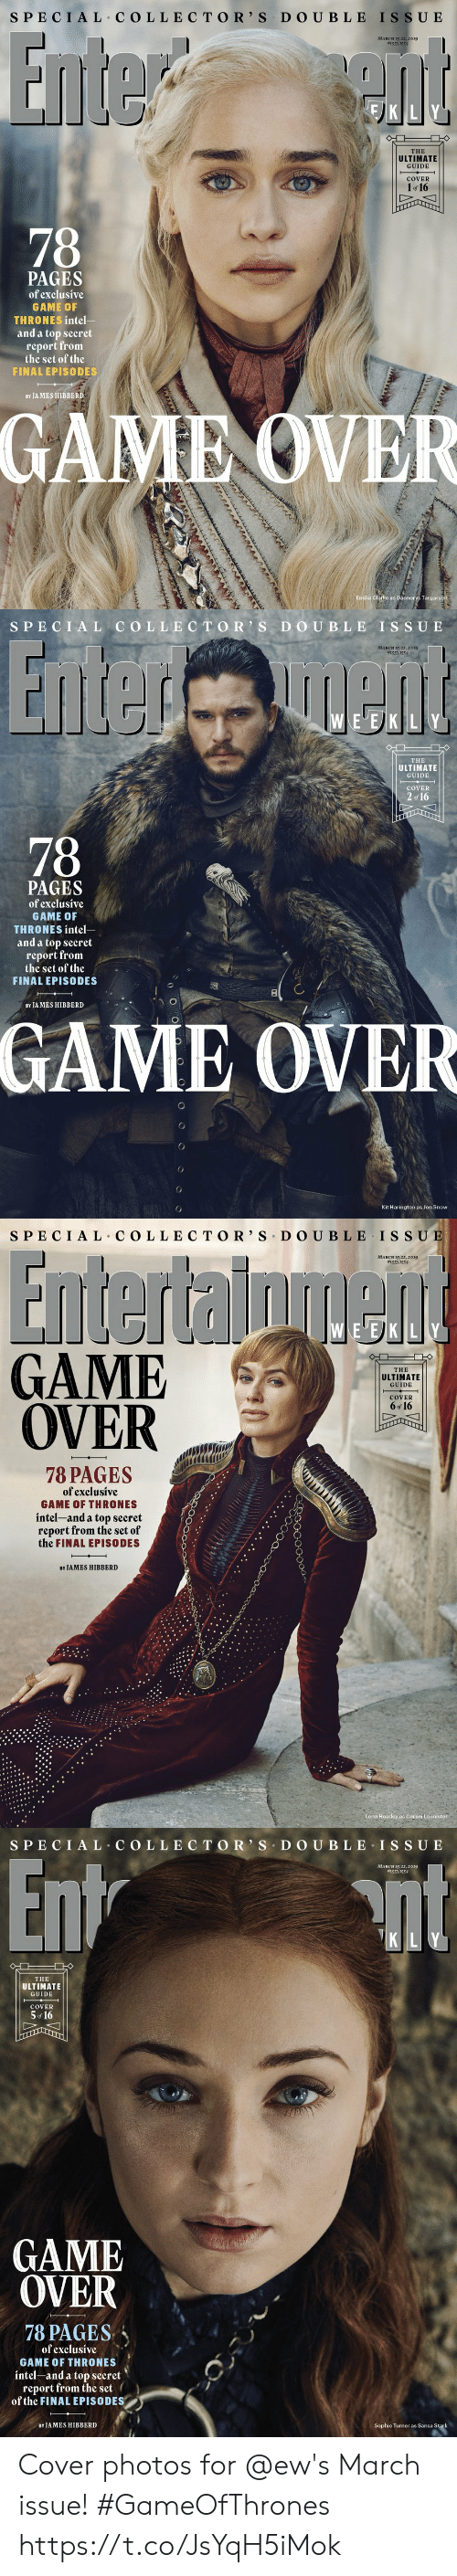 Cersei: S PECIAL COLLECTO R' S D O UBLE ISSU E  MARCH I5 22,2019  #1553/1554  THE  ULTIMATE  GUIDE  COVER  1 or 16  PAGES  of exclusíve  GAME OF  THRONES intel-  and a top secret  report from  the set of the  FINAL EPISODES  BY JAMES HIBBERD  GAME OVER  Emilia C  e as Daenerys Targar   SPECI AL COLLEC TOR S D O UBLE IS SUE  MARCH I5/22,2019  #15531155  E EK LY  THE  ULTIMATE  GUIDE  COVER  2  of 16  78  PAGES  of exclusíve  GAME 0  THRONES intel  and a top secret  report from  the set of the  FINAL EPISODES  8  BY JA MES HIBBERD  GAME OVER  Kit Harington as Jon Snow   SPECIAL C OLLE CTOR' S DO UBLE IS SU  MARCH 15/22,2019  #1553/1554  EVE)KILY  GAME  OVER  THE  ULTIMATIE  GUIDE  COVER  6 of 16  017  78 PAGES  of exclusíve  GAME OF THRONES  íntel-and a top secret/  report from the set of  the FINAL EPISODES  BY JAMES HIBBERD  Lena Headey as Cersei Lannister   S PECIAL COLLEC TOR' S D O U BLE ISSUE  MARCH 15/22,2019  #15531554  K LY  THE  ULTIMATE  GUIDE  COVER  5 16  GAME  OVER  78 PAGES、  of exclusíve  GAME OF THRONES  intel-and a top secret  report from the set  of the FINAL EPISODES  BY JAMES HIBBERD  Sophie Turner as Sansa Stark Cover photos for @ew's March issue! #GameOfThrones https://t.co/JsYqH5iMok